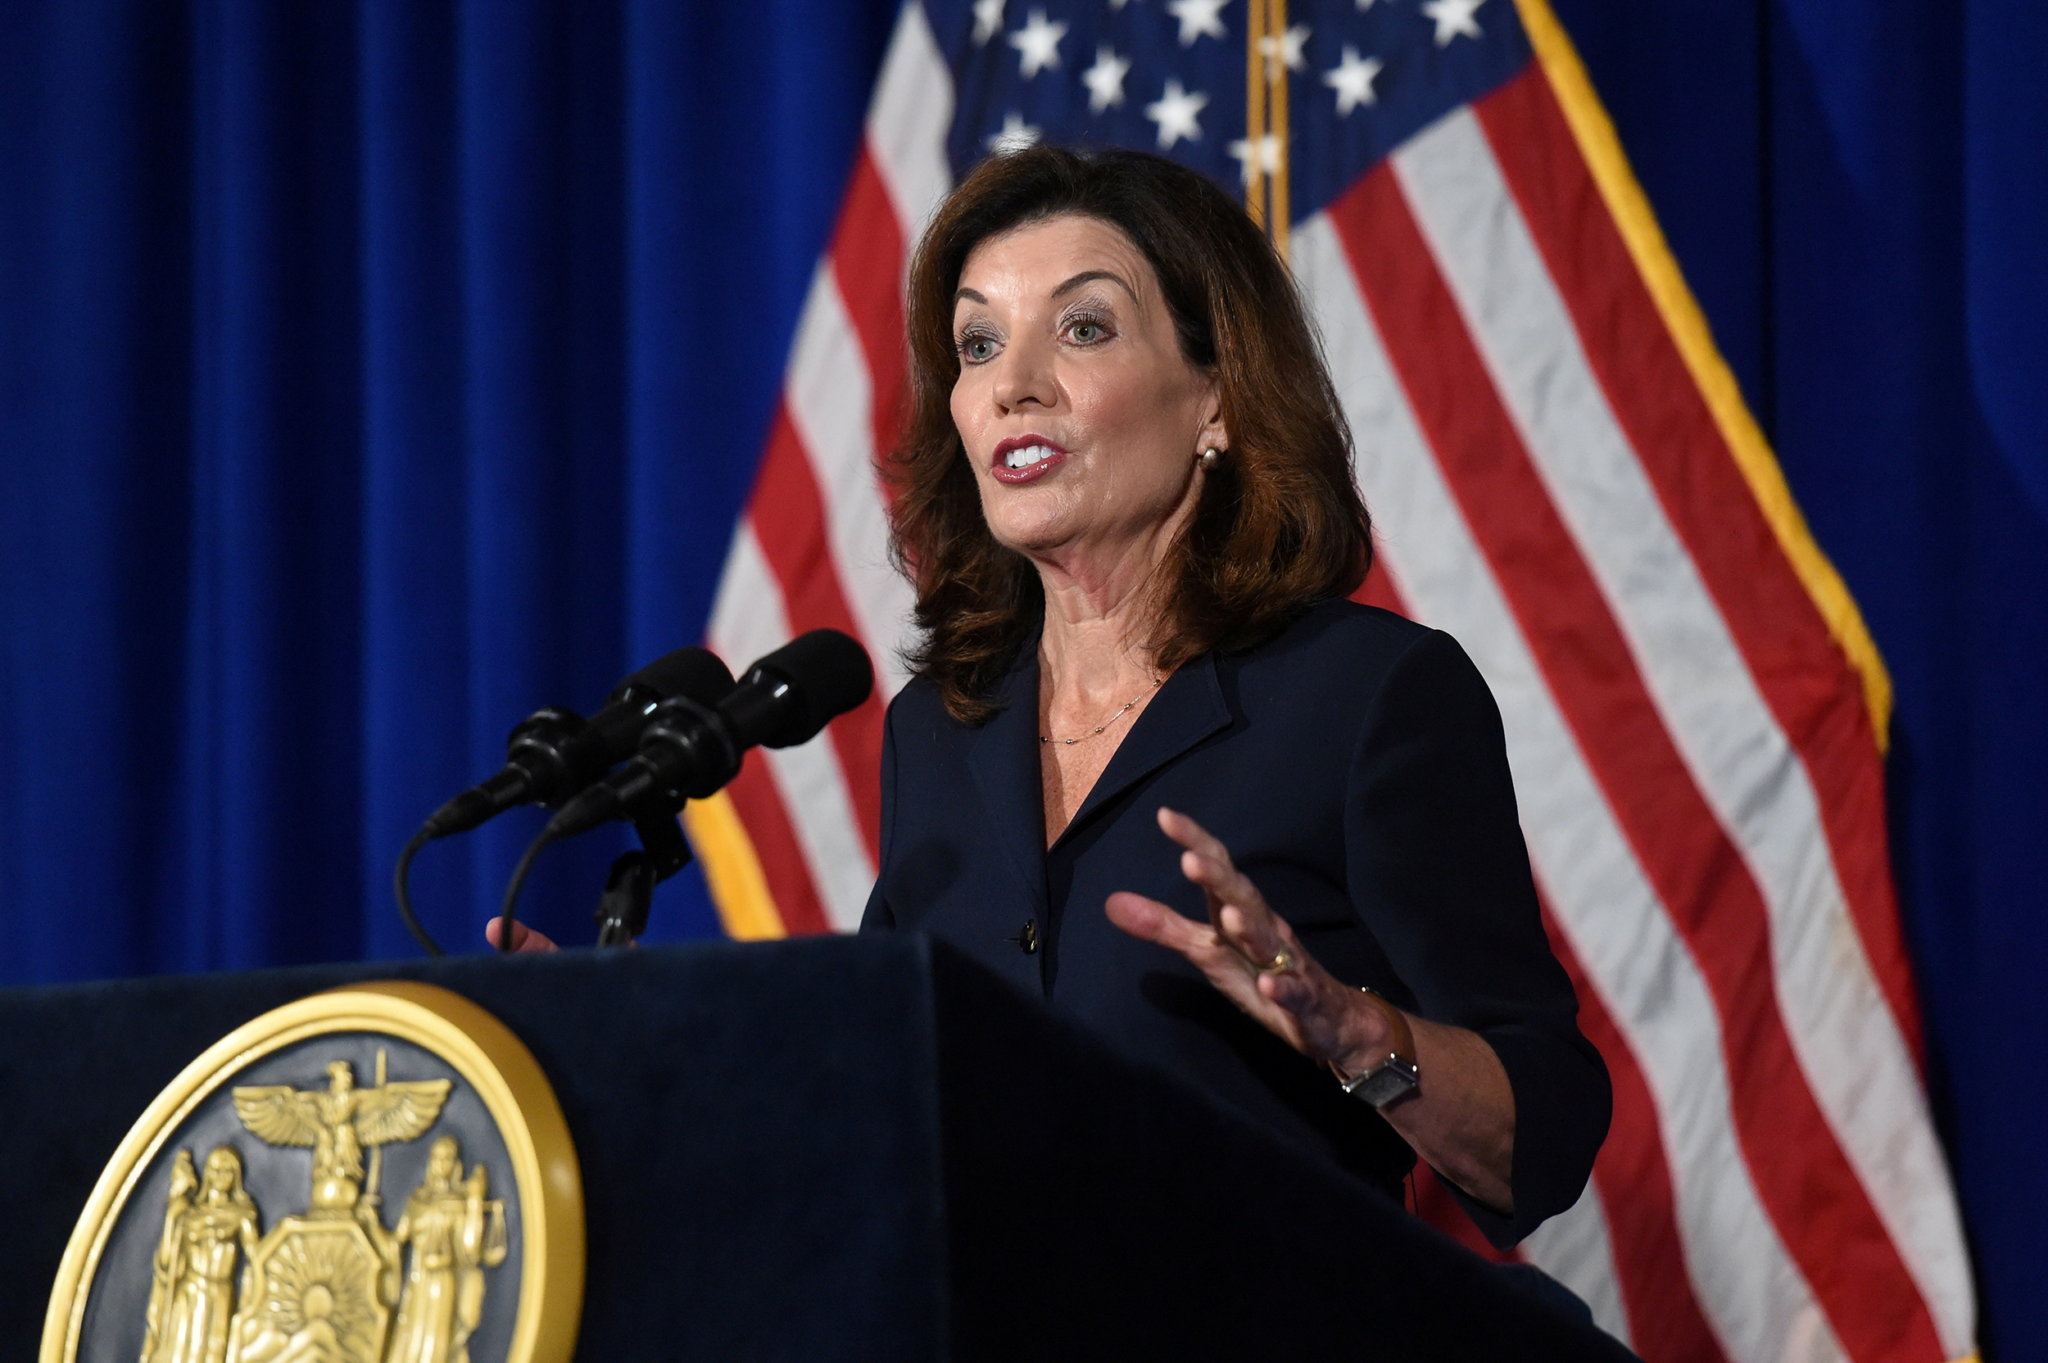 New Governor Hochul's Potential Impact on CUNY